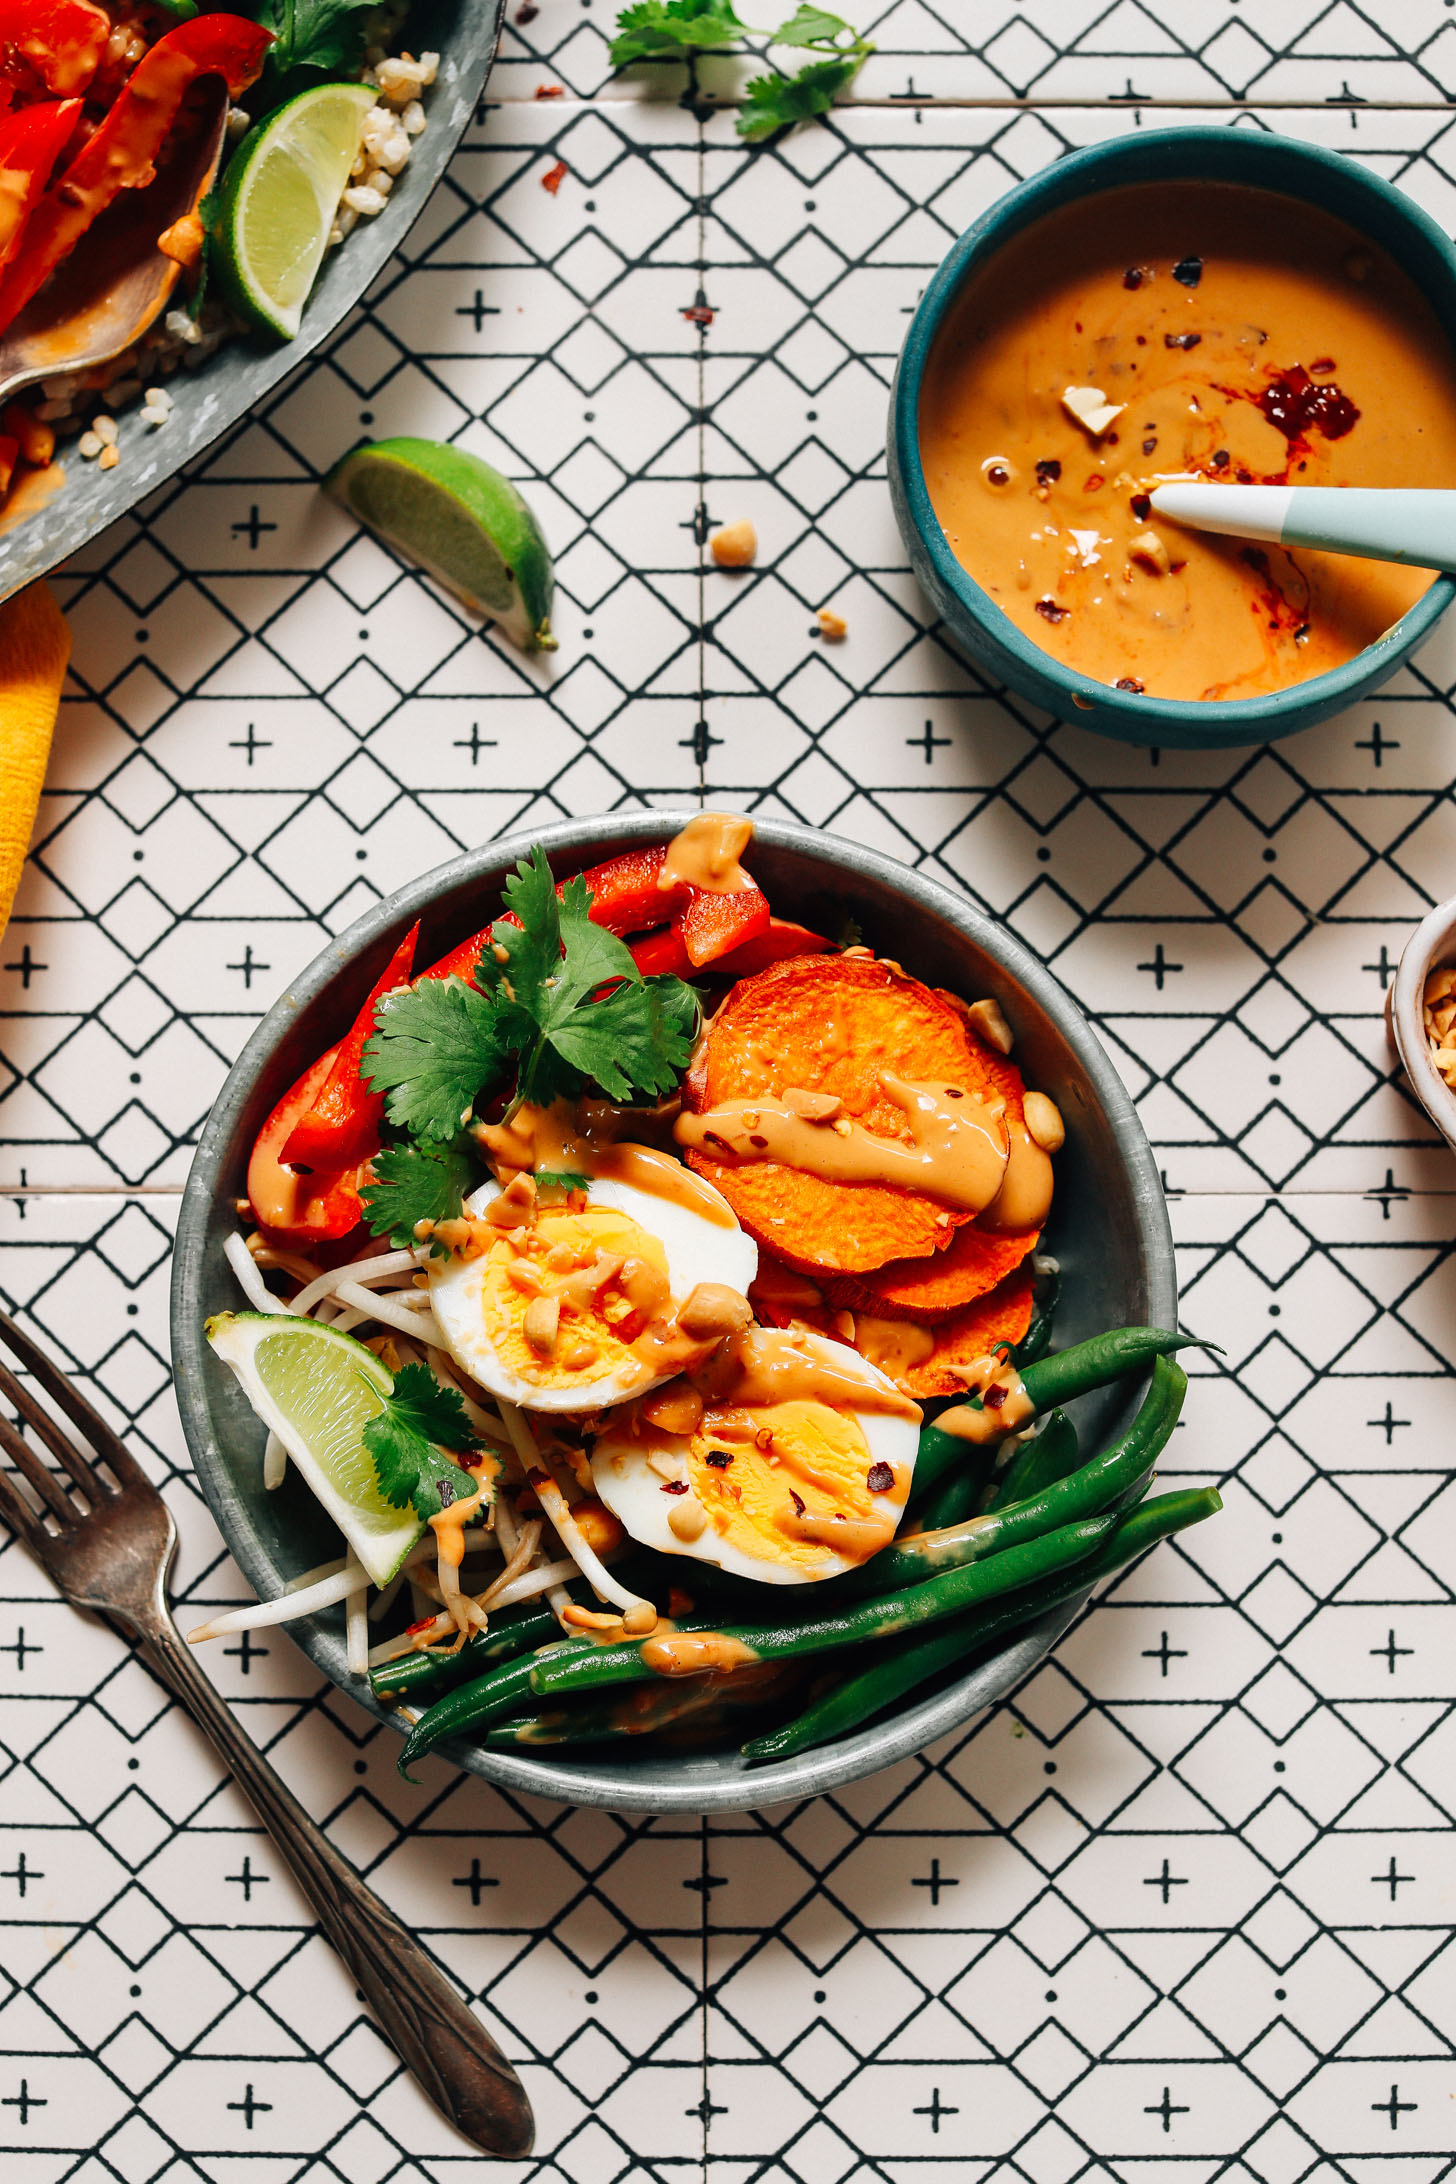 Bowl of Gado Gado made with brown rice, green beans, sweet potato, bell pepper, egg, and Spicy Peanut Sauce